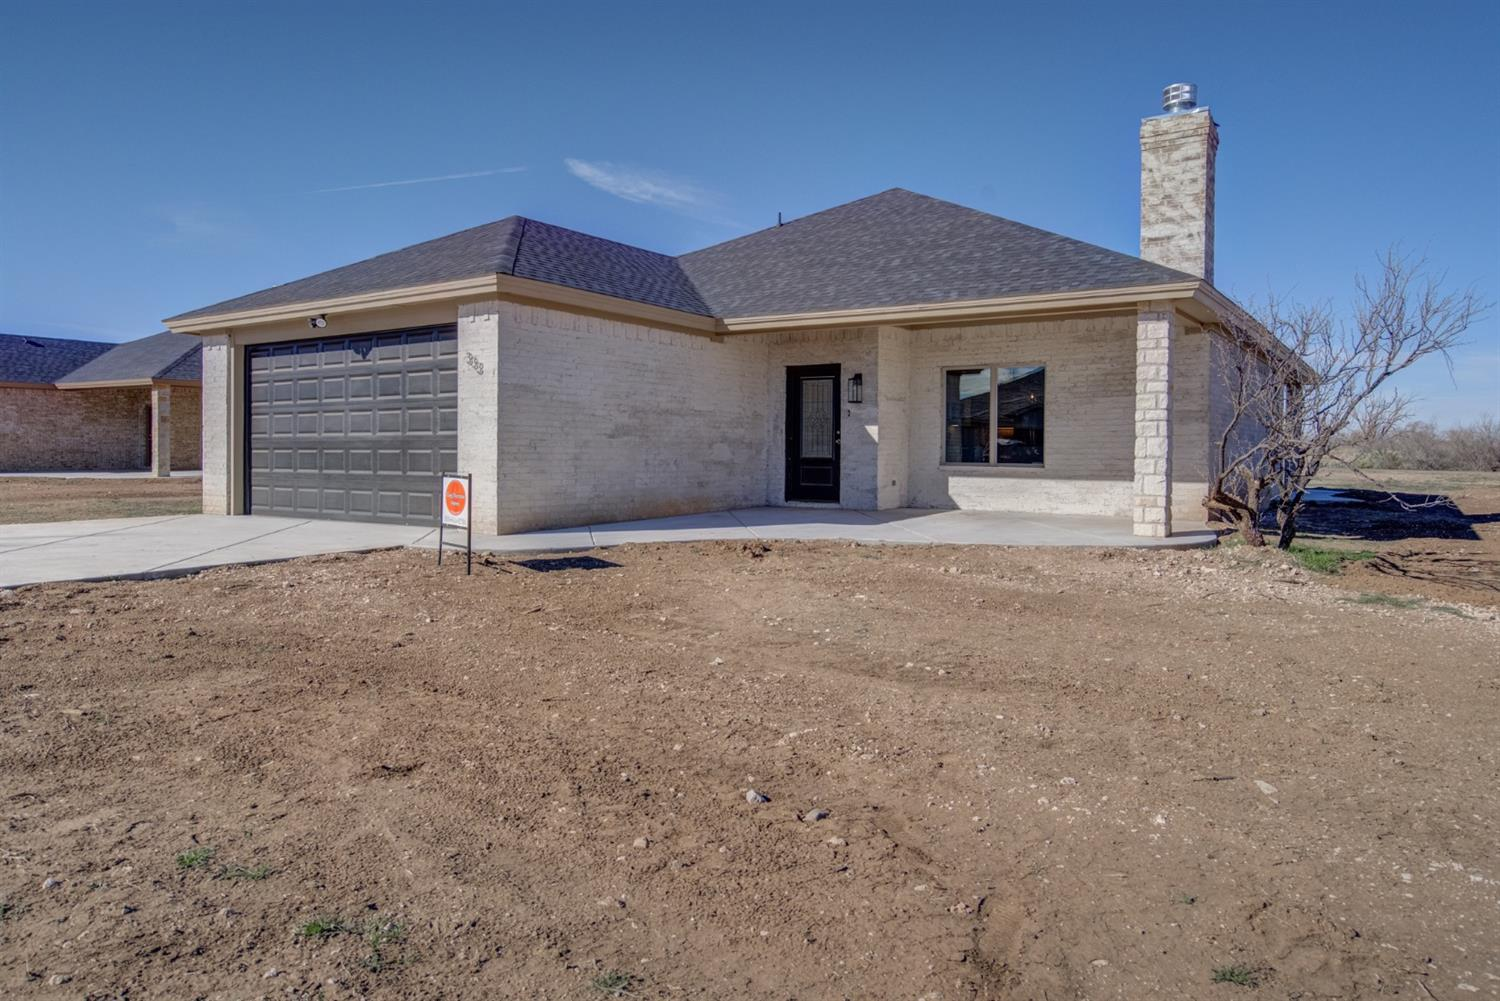 Beautiful brand new home at Buffalo Springs Lake.  This home features 3 bedrooms, 2 bathrooms and a 2 car garage with epoxy flooring.  Luxury vinyl plank flooring throughout, lovely corner brick fireplace, granite in the kitchen and both bathrooms and a desireable open concept kitchen, dining area and living room.   The kitchen has a large breakfast bar/island and a full appliance package including refrigerator. This home has wonderful covered front porch and a covered patio in the back.  This home is perfect for entertaining and sits on a .3294 lot.  Come enjoy all of the amazing amenities the lake has to offer while enjoying your new home!